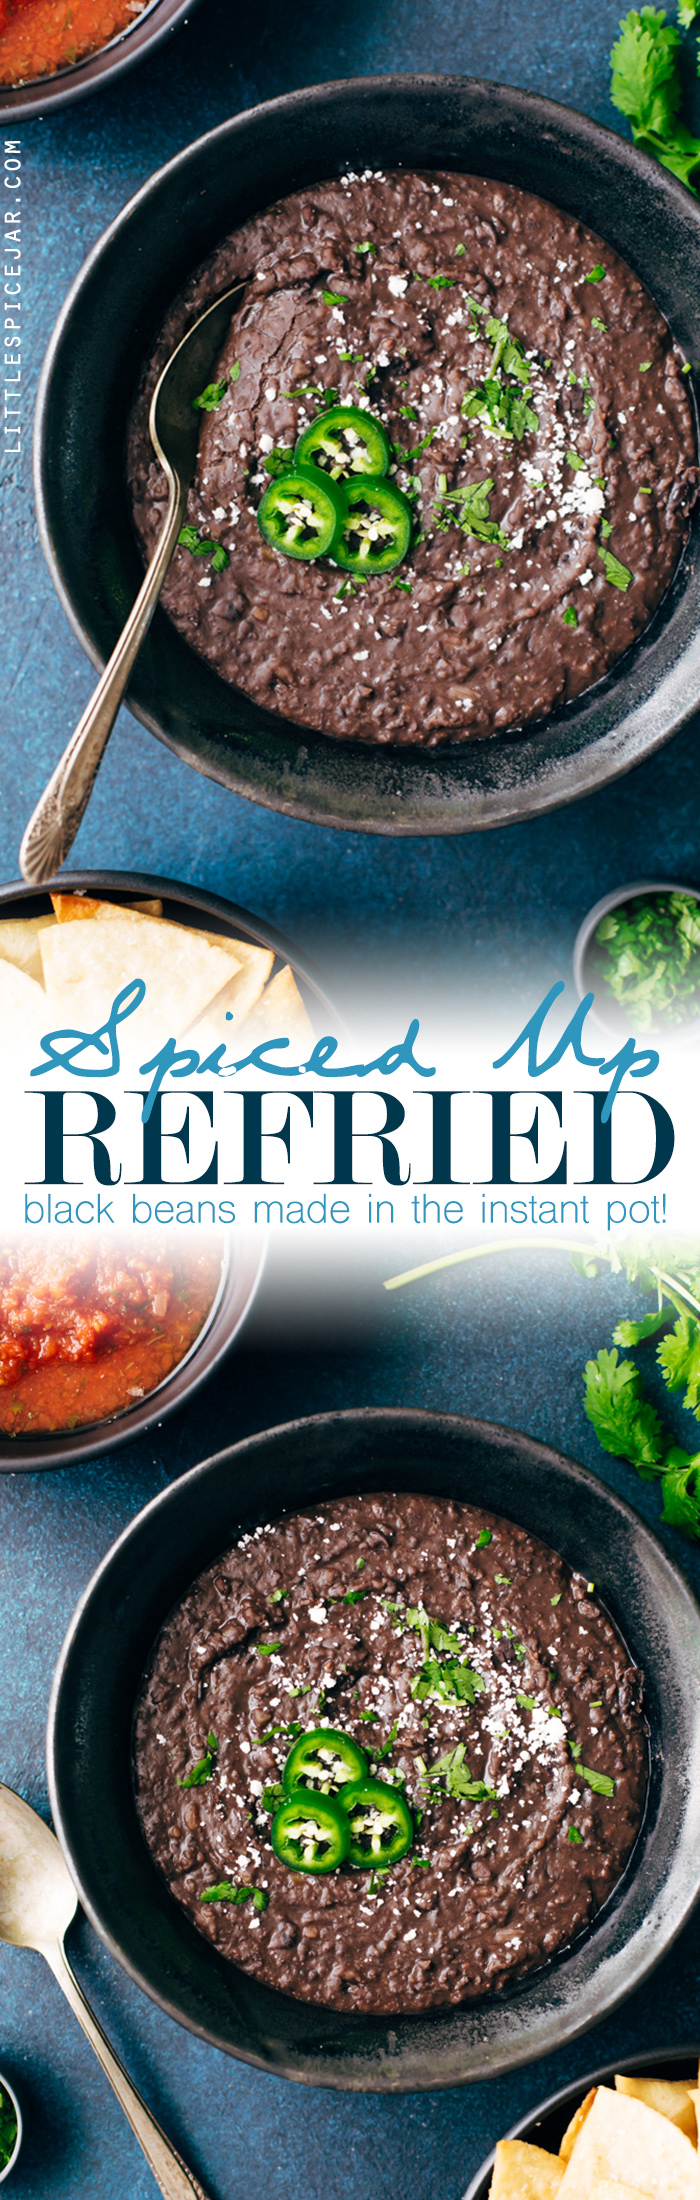 Spiced Up Refried Black Beans - learn how to make restaurant style black beans at home right in your instant pot! #instantpot #refriedblackbeans #refriedbeans #blackbeans | Littlespicejar.com